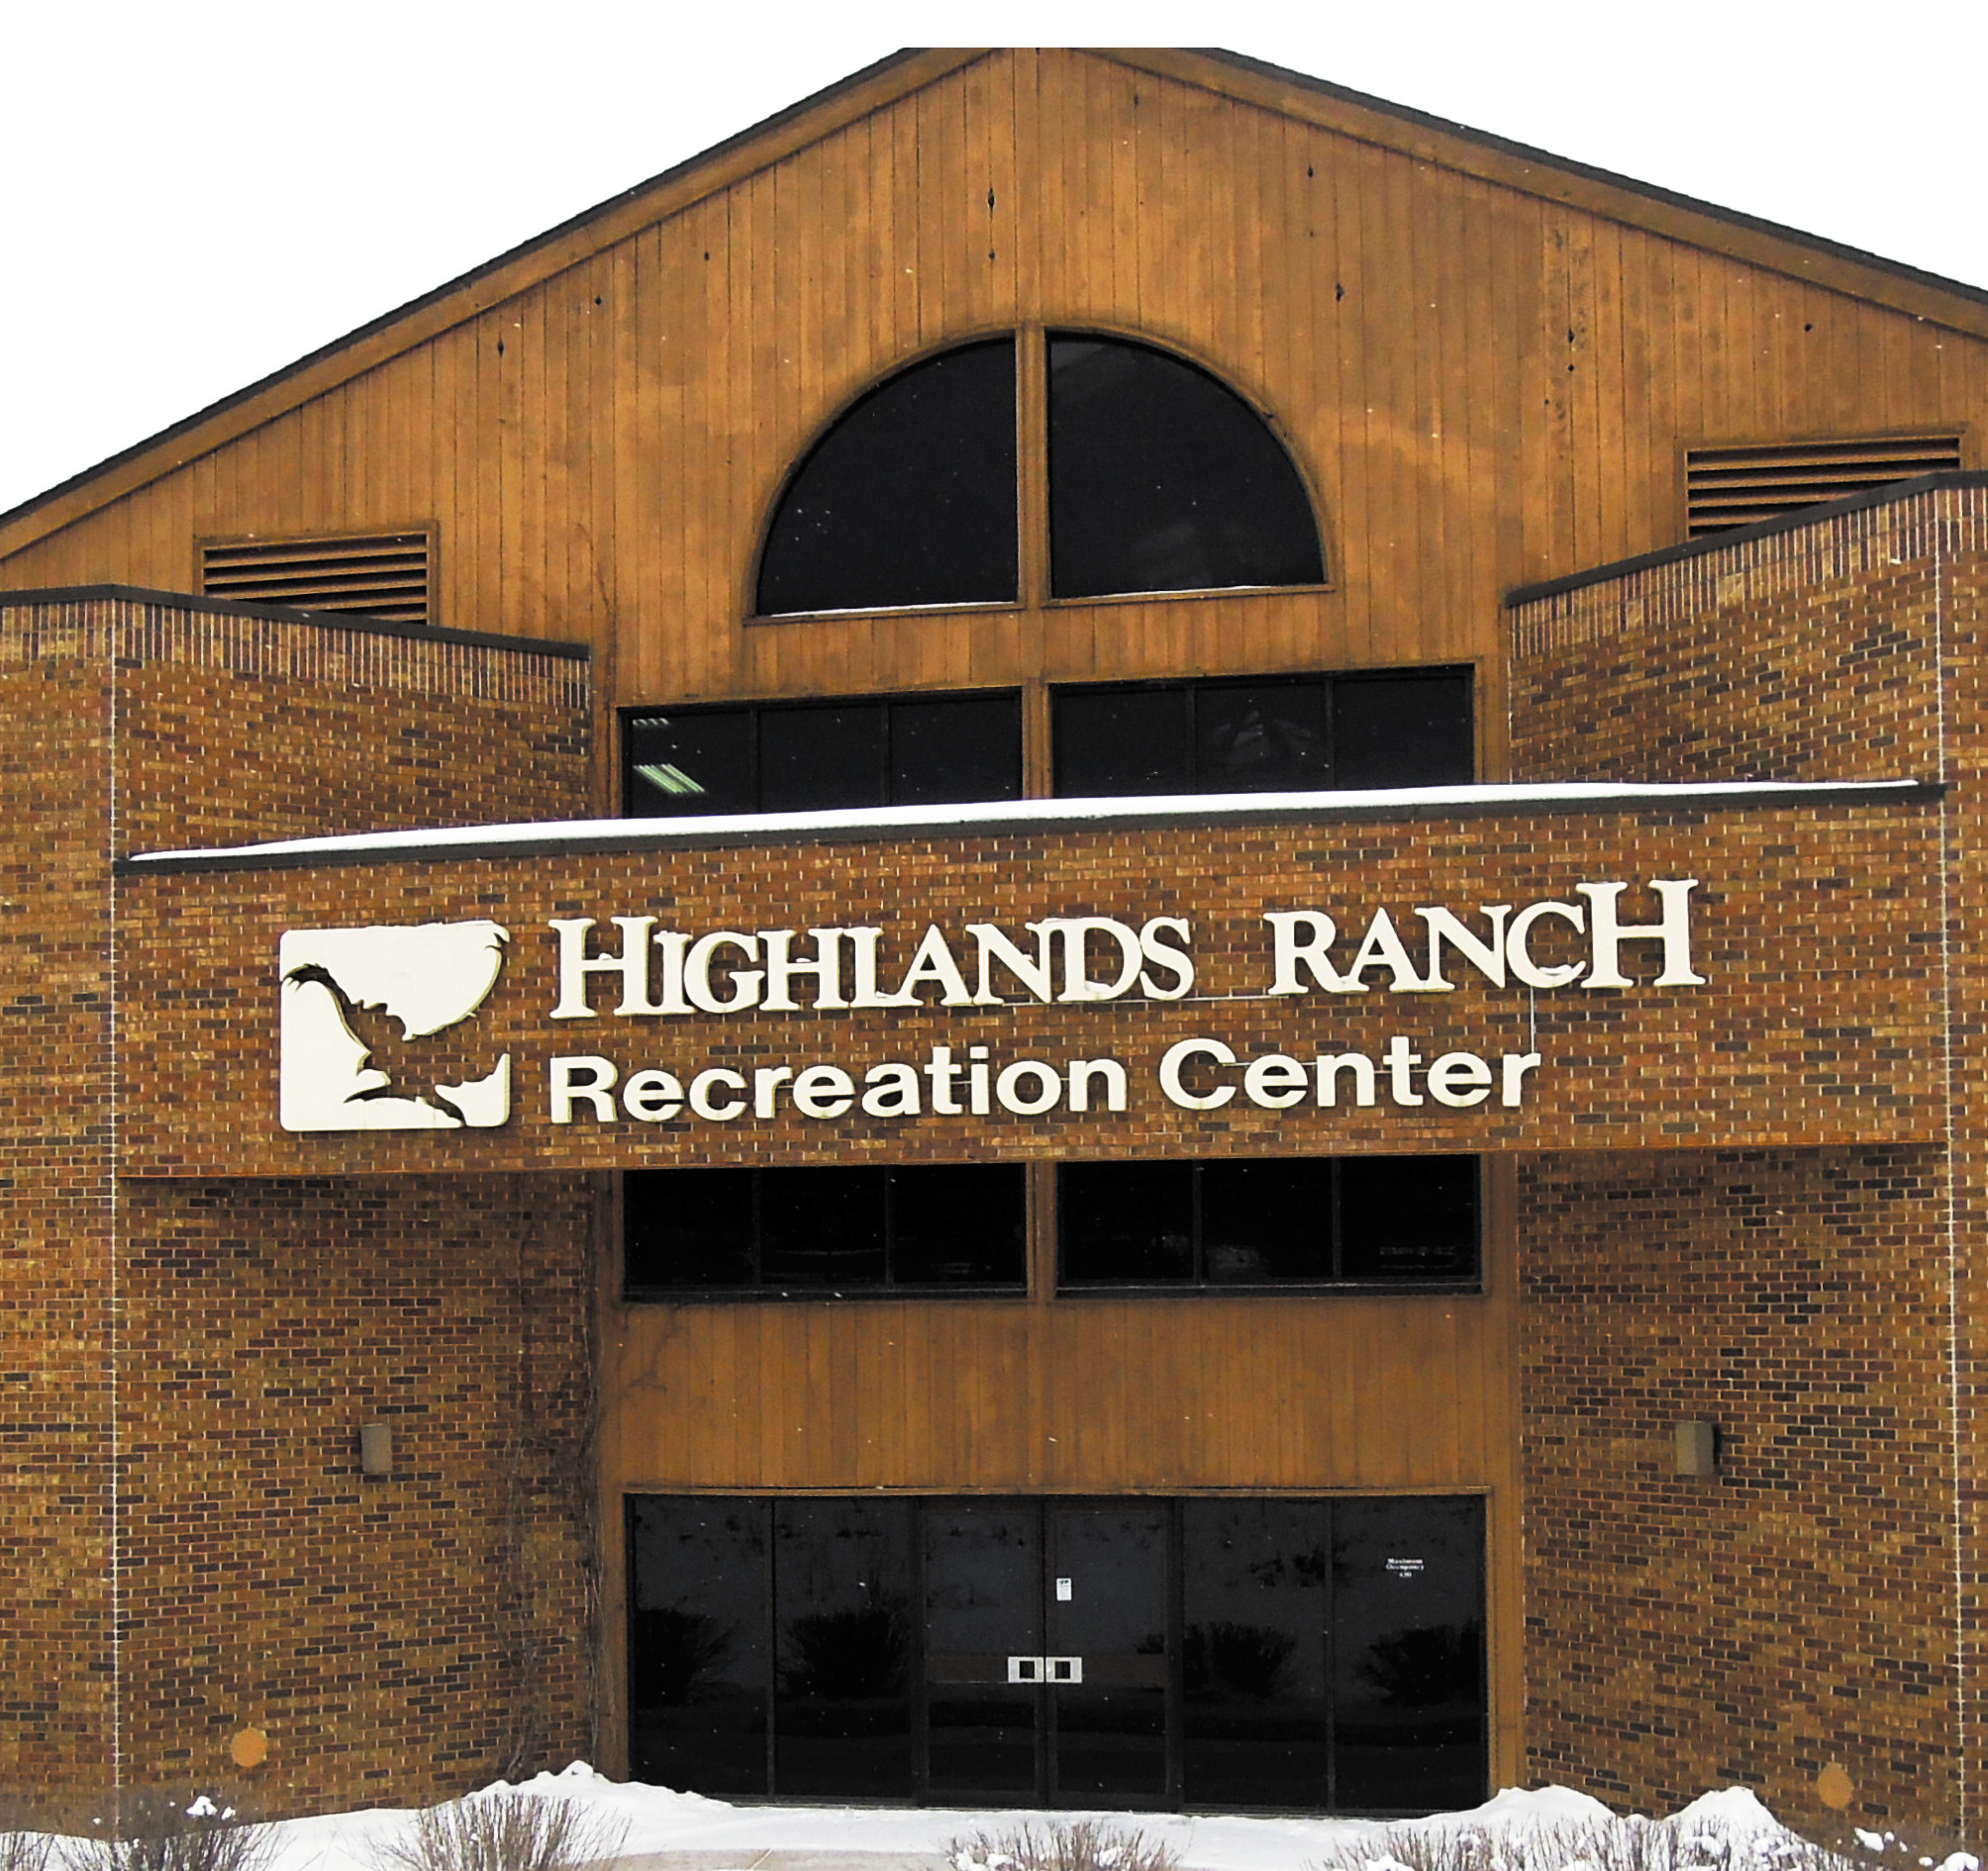 A New Logo For Highlands Ranch?